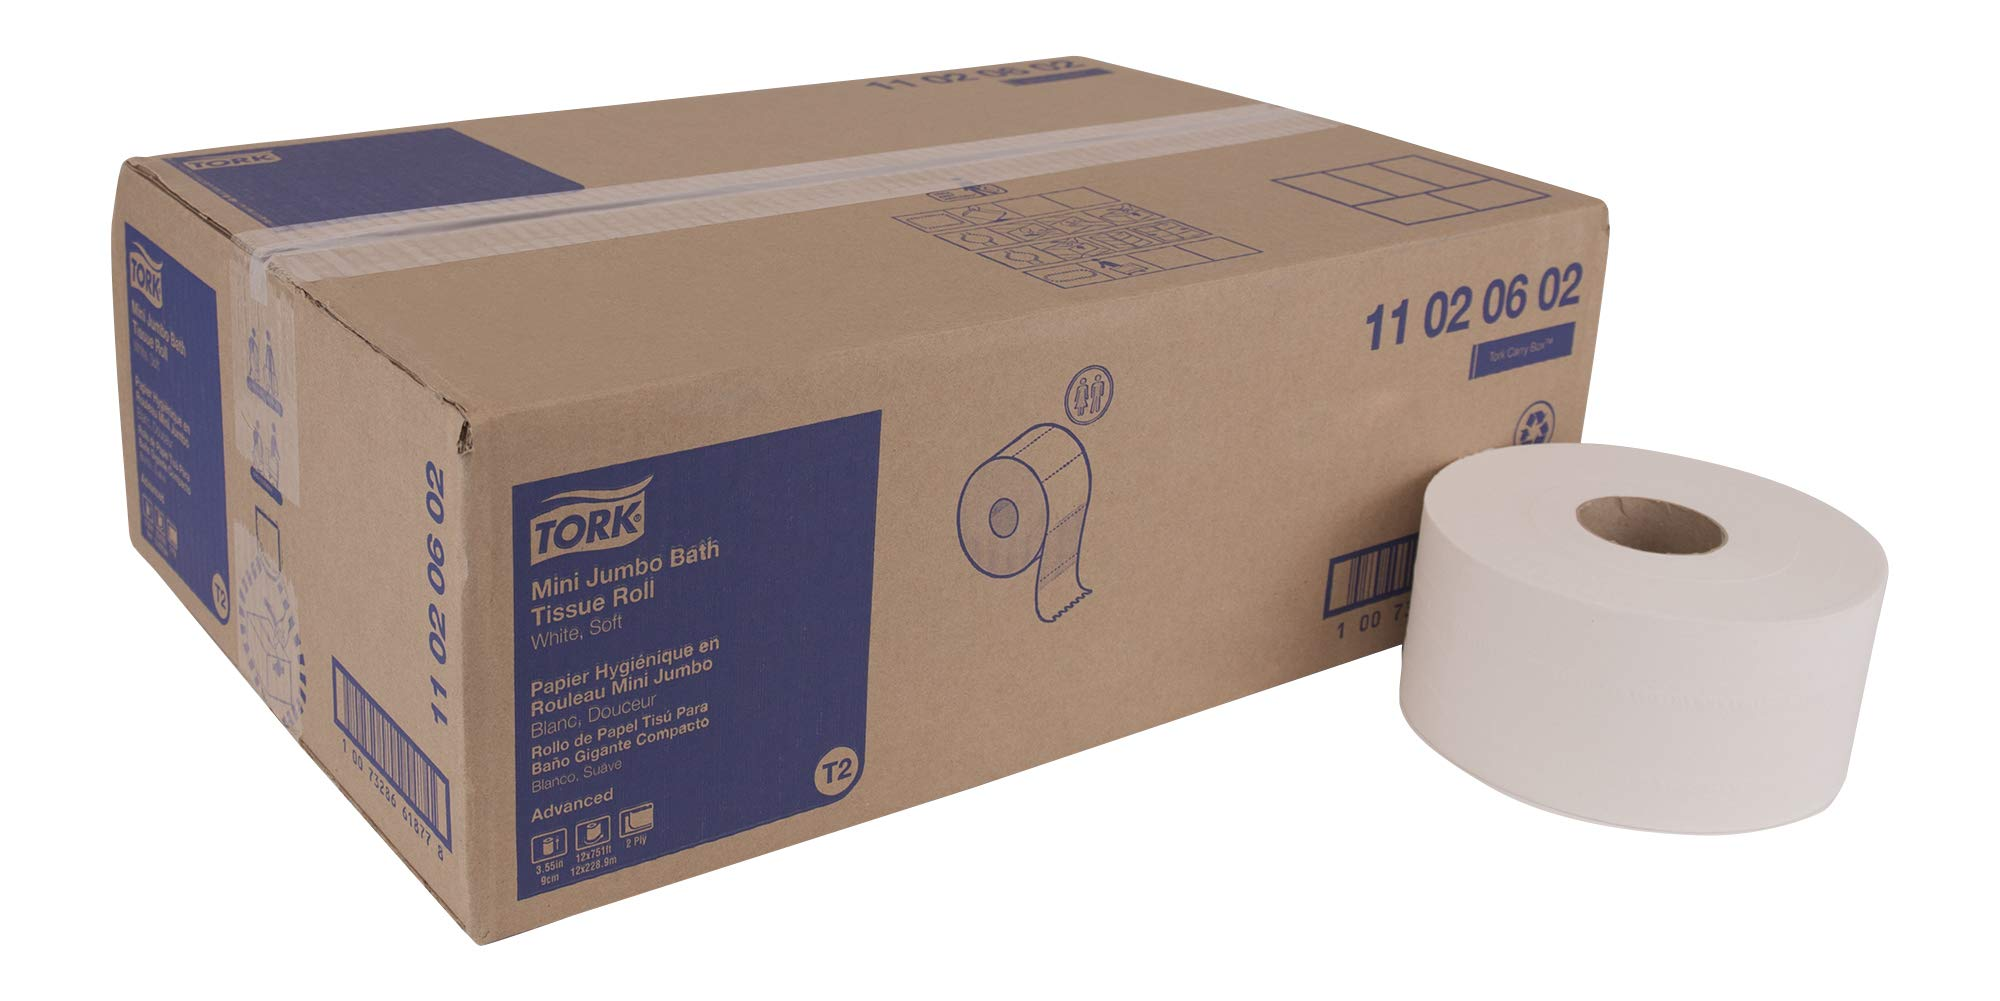 Tork Advanced 11020602 Soft Mini Jumbo Bath Tissue Roll, Perforated, 2-Ply, 7.36'' Diameter, 3.55'' Width x 8.38'' Length, White (Case of 12 Rolls, 1,075 per Roll, 12,900 Sheets) by Tork